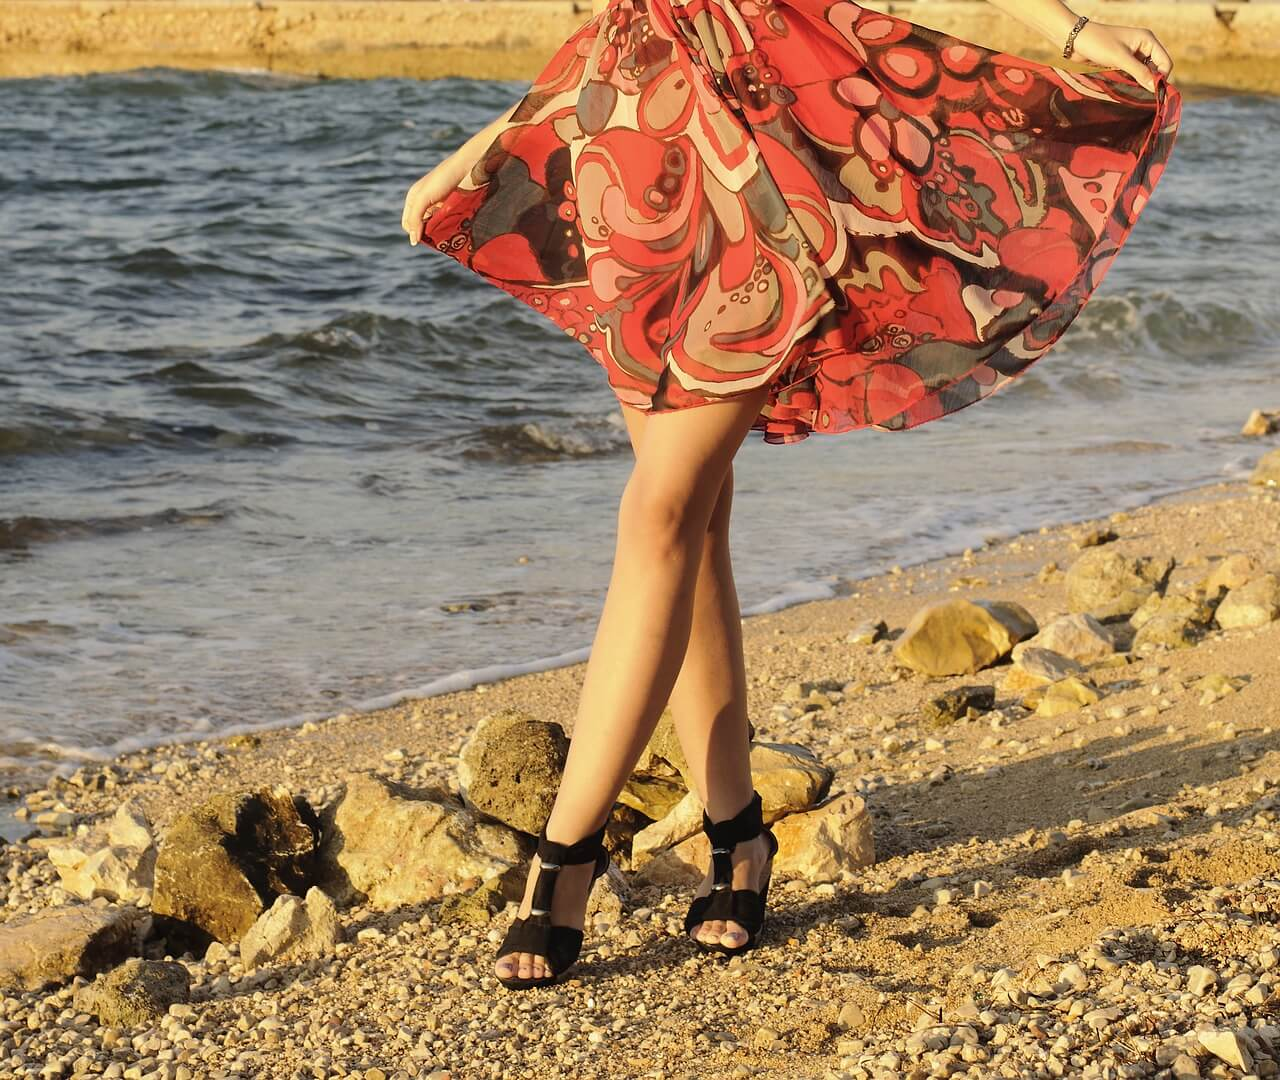 How To Prevent Varicose Veins To Have Beautiful Legs